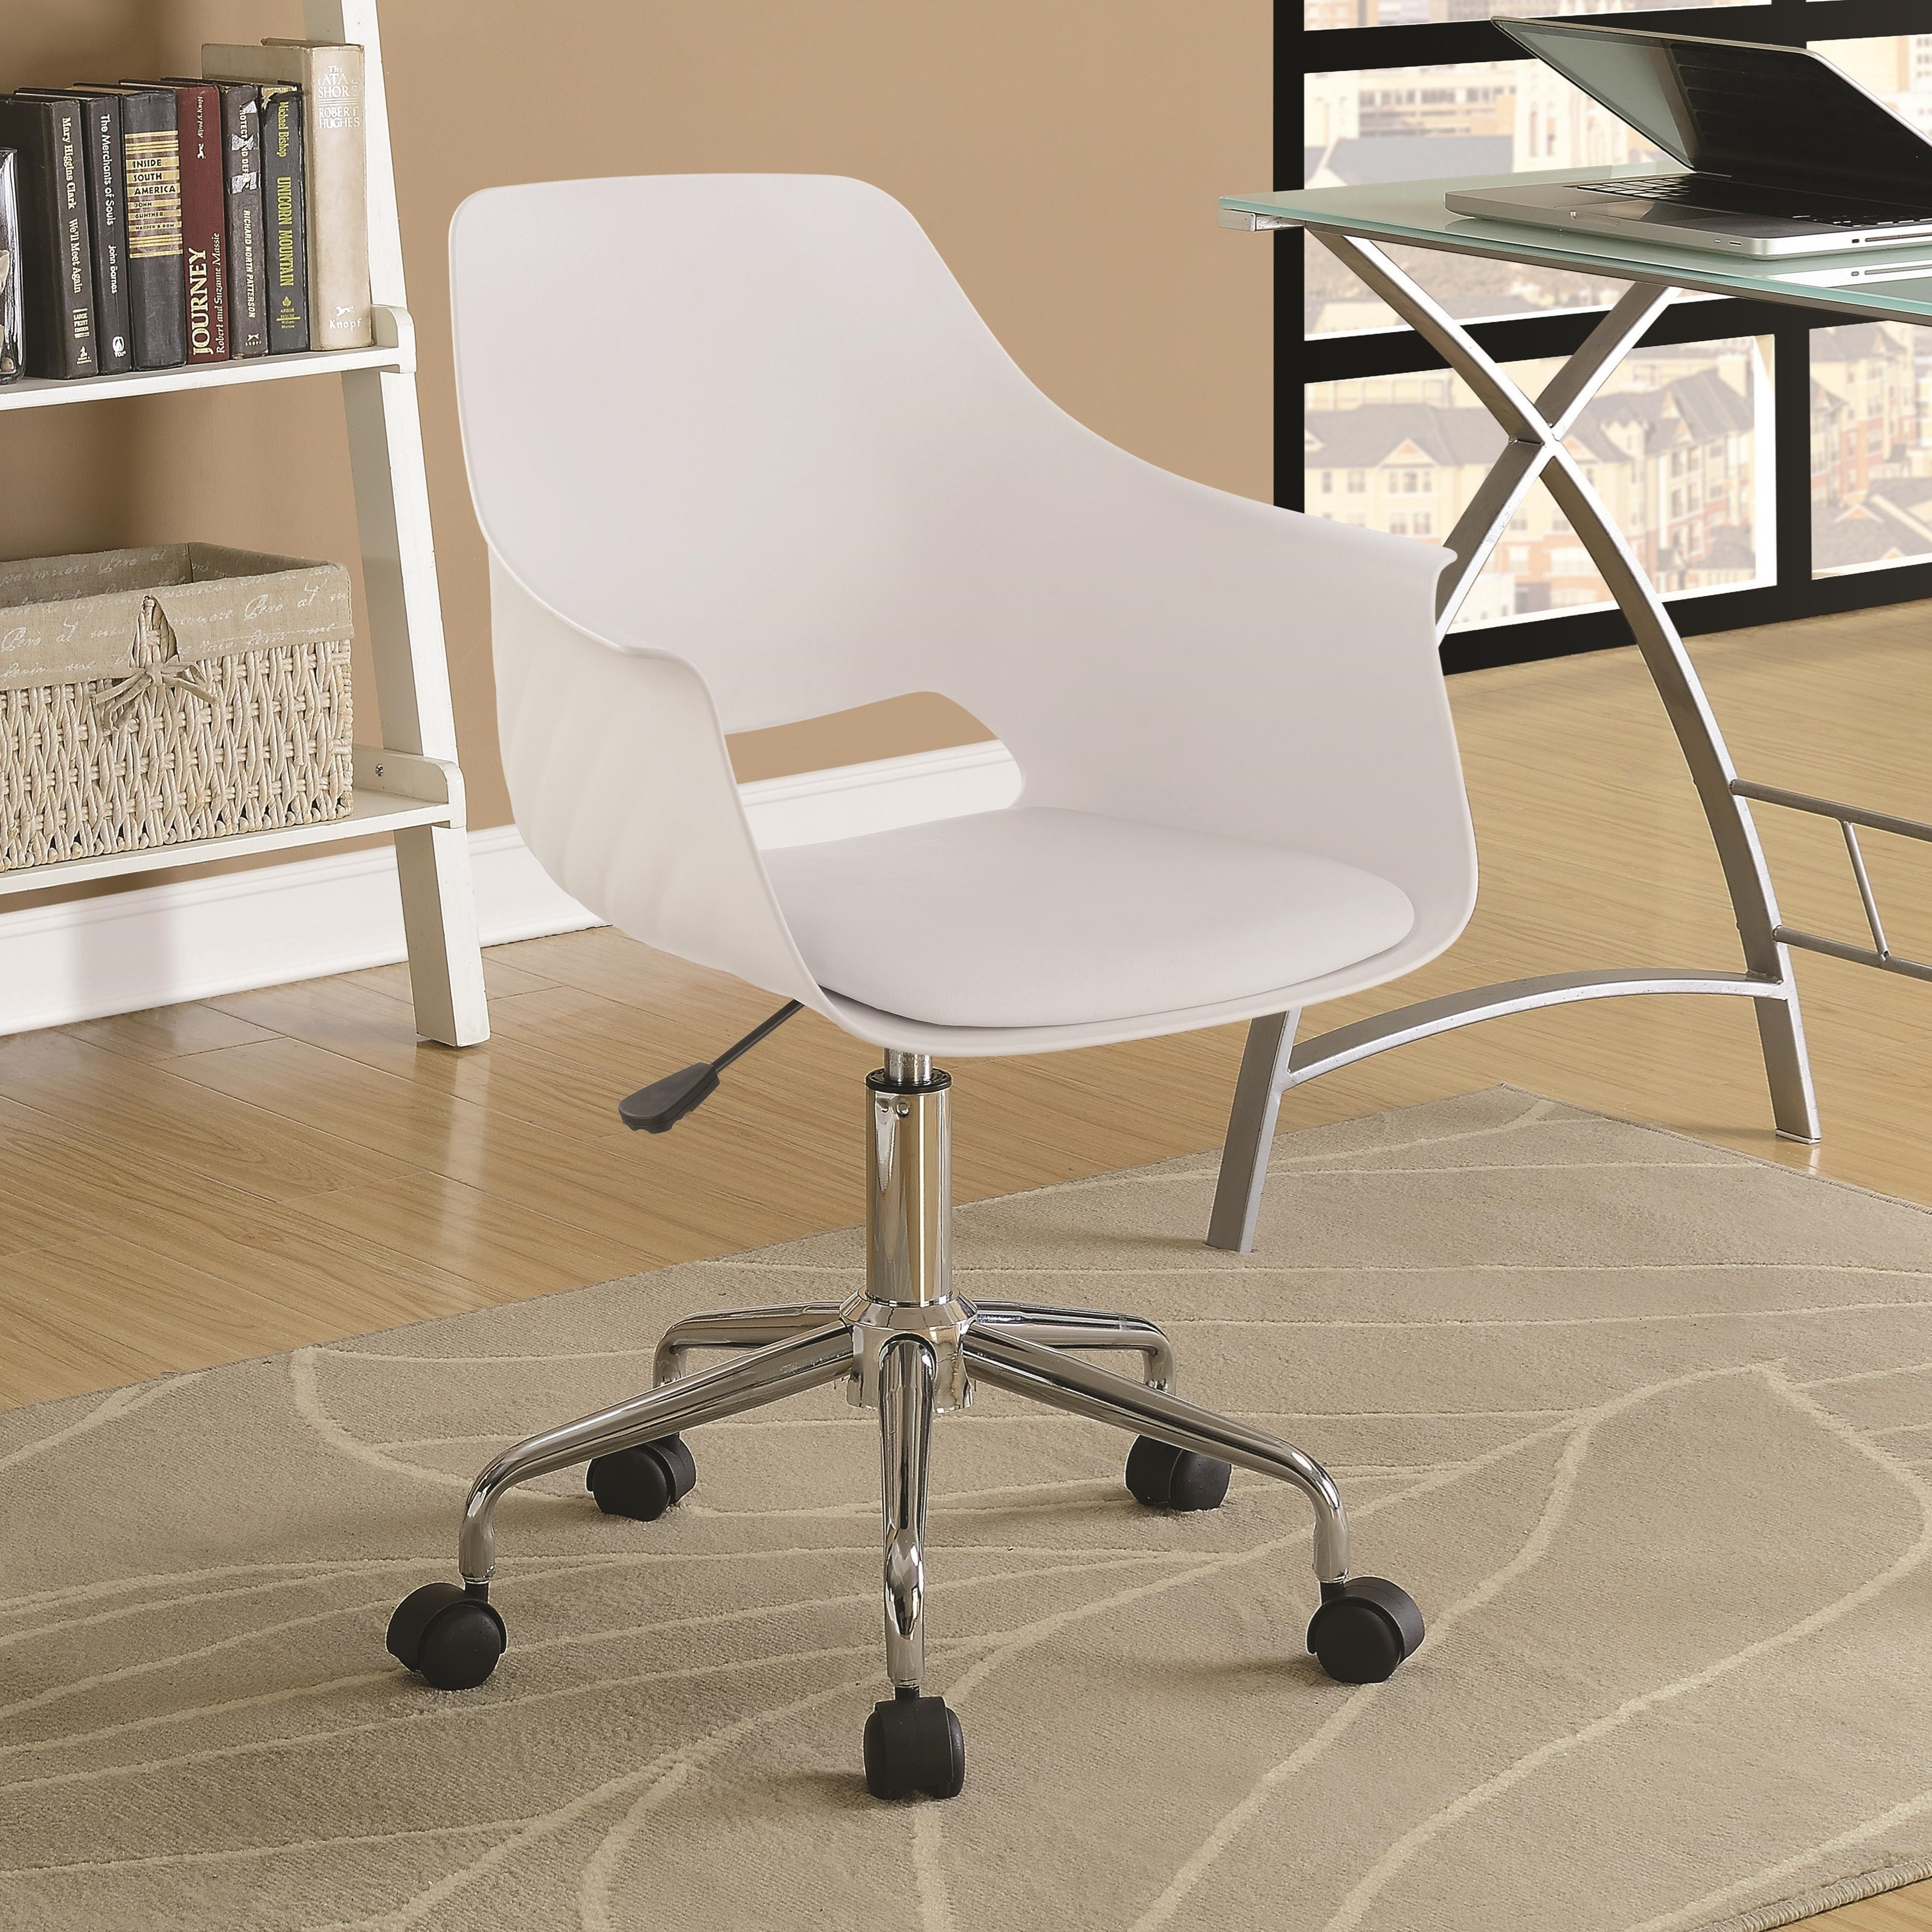 Contemporary Office Chair with Leatherette Seat- black and white